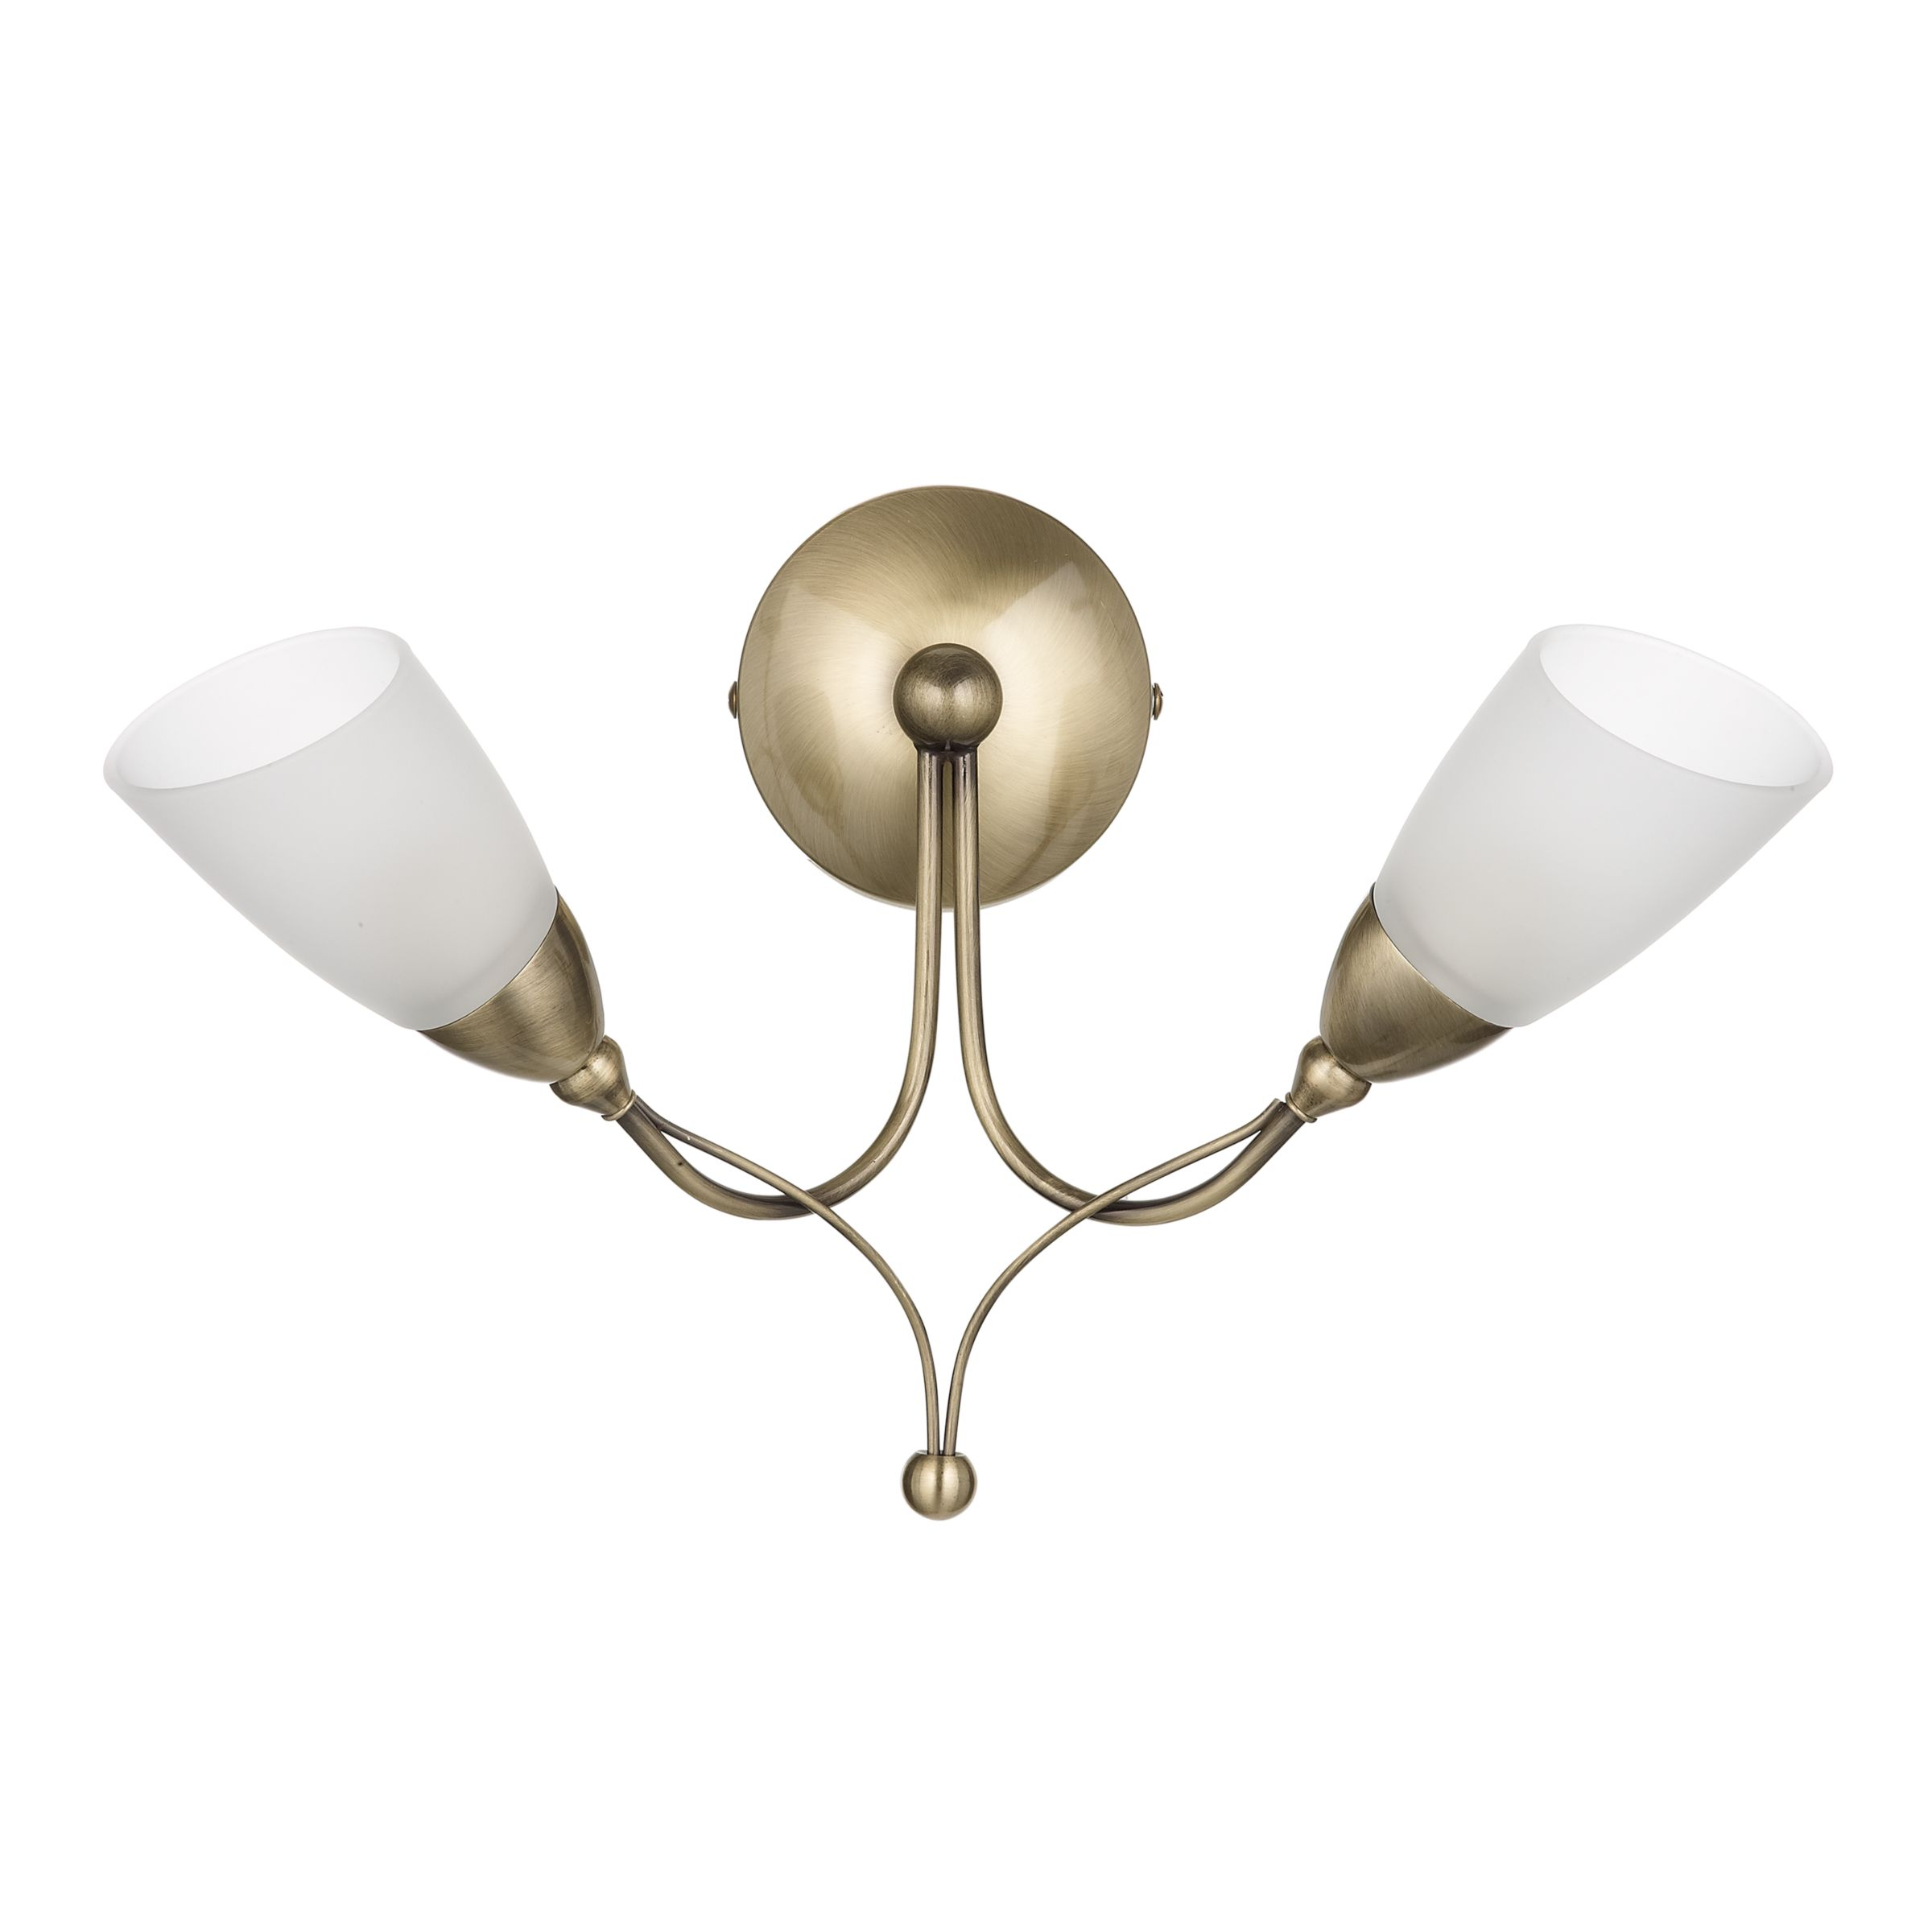 Yasmin Wall Light 2 Arm : john lewis wall lights